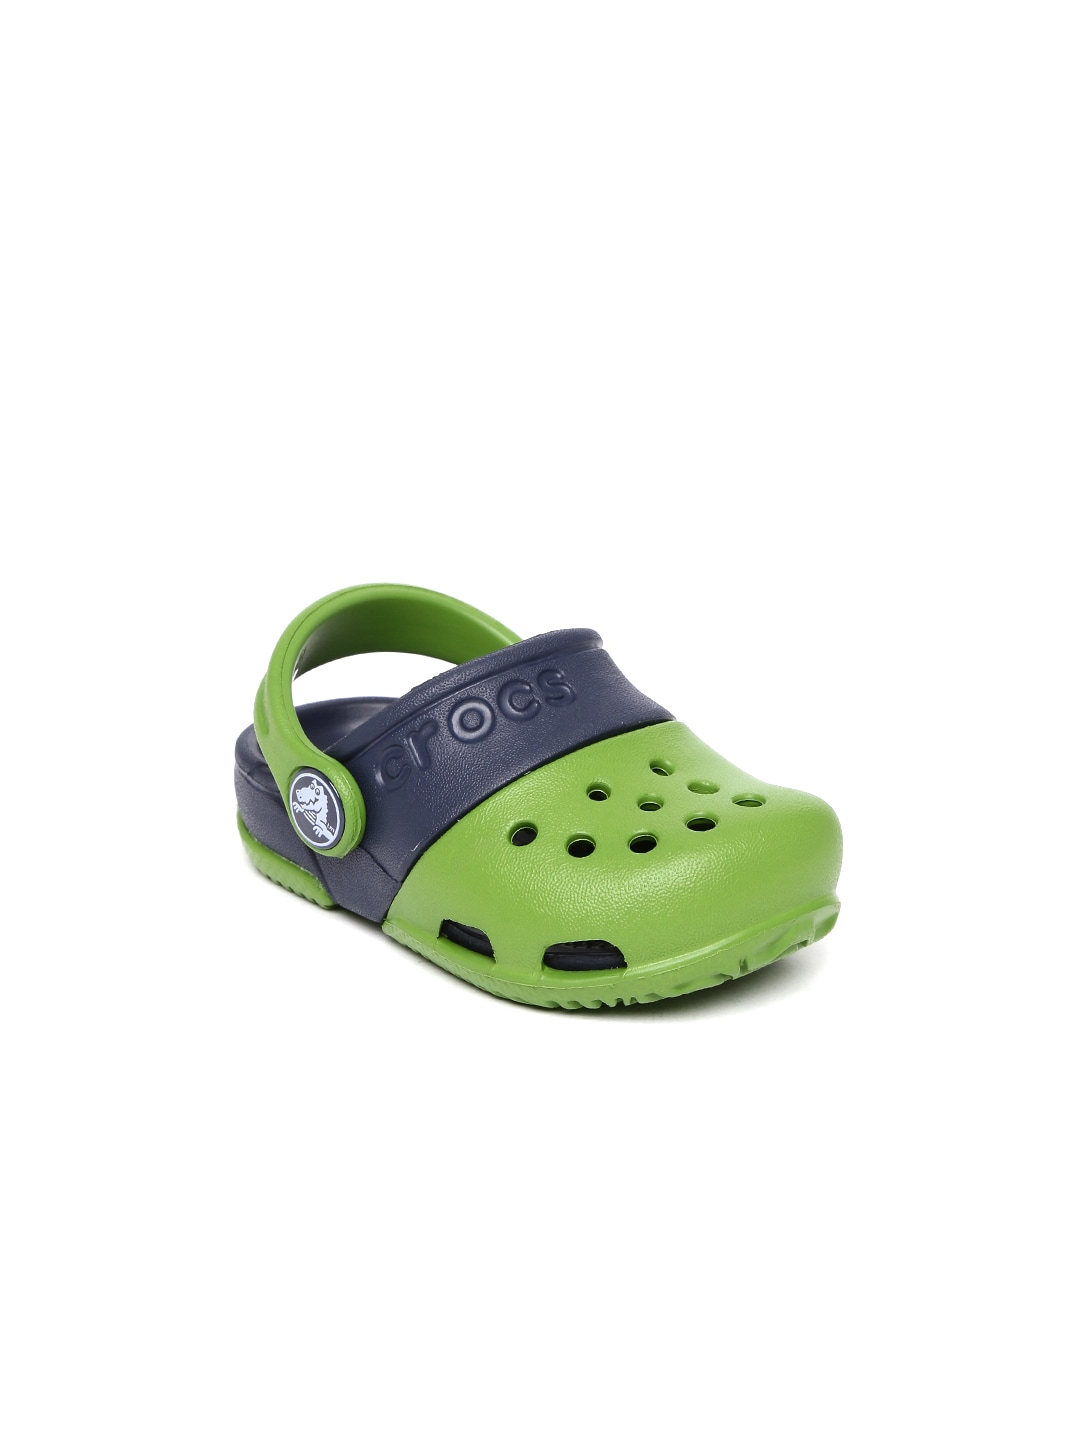 Crocs Kids Green and Navy Colourblocked Electro II Clogs